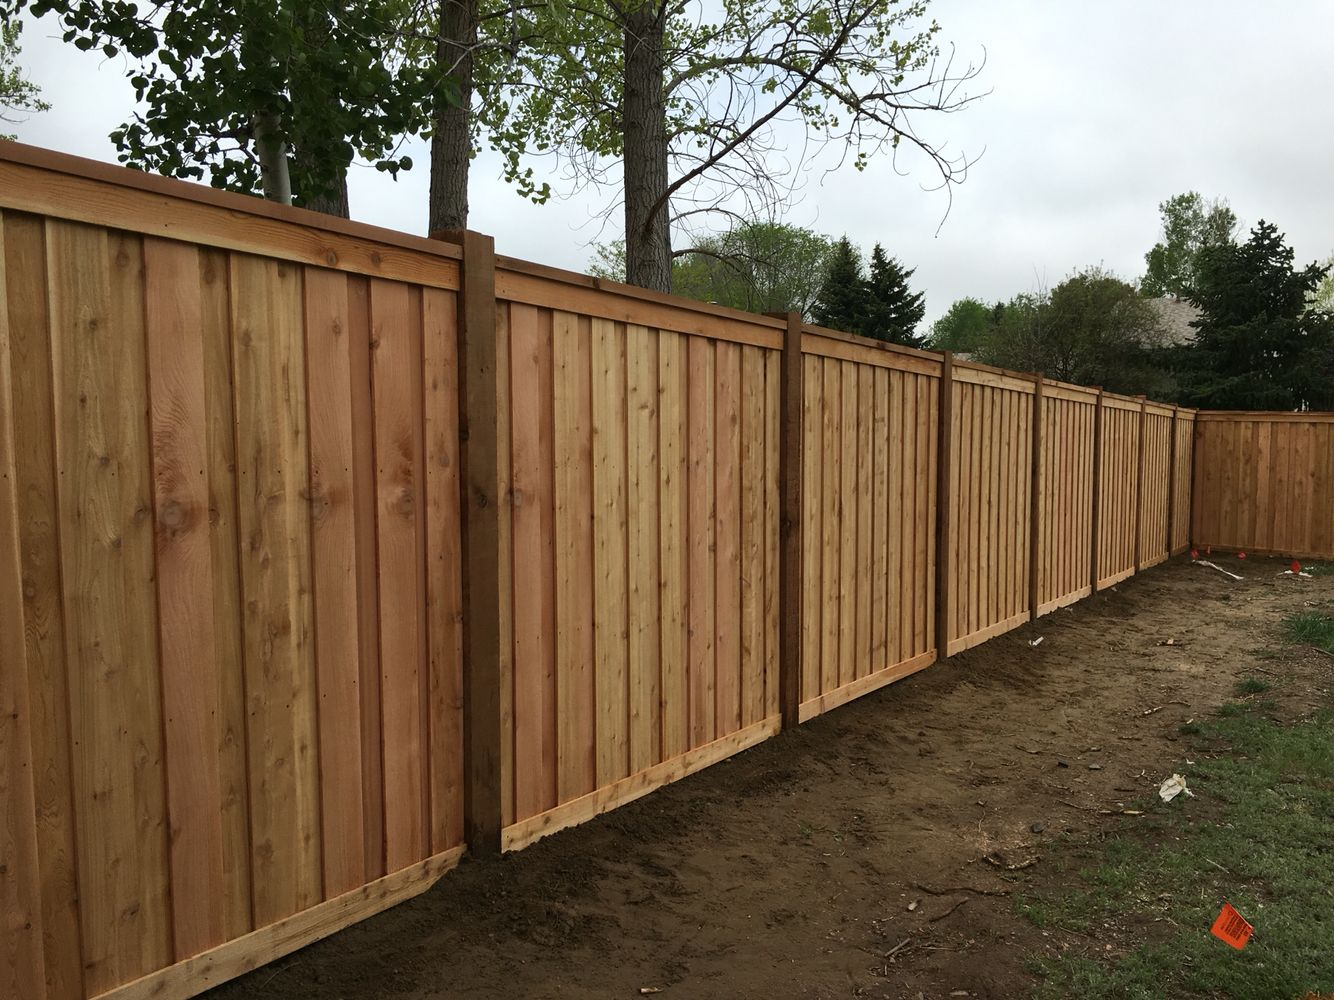 7 tall cedar privacy fence with 6x6 posts 2x6 top cap 6 7 tall cedar privacy fence with 6x6 posts 2x6 top cap 6 baanklon Gallery